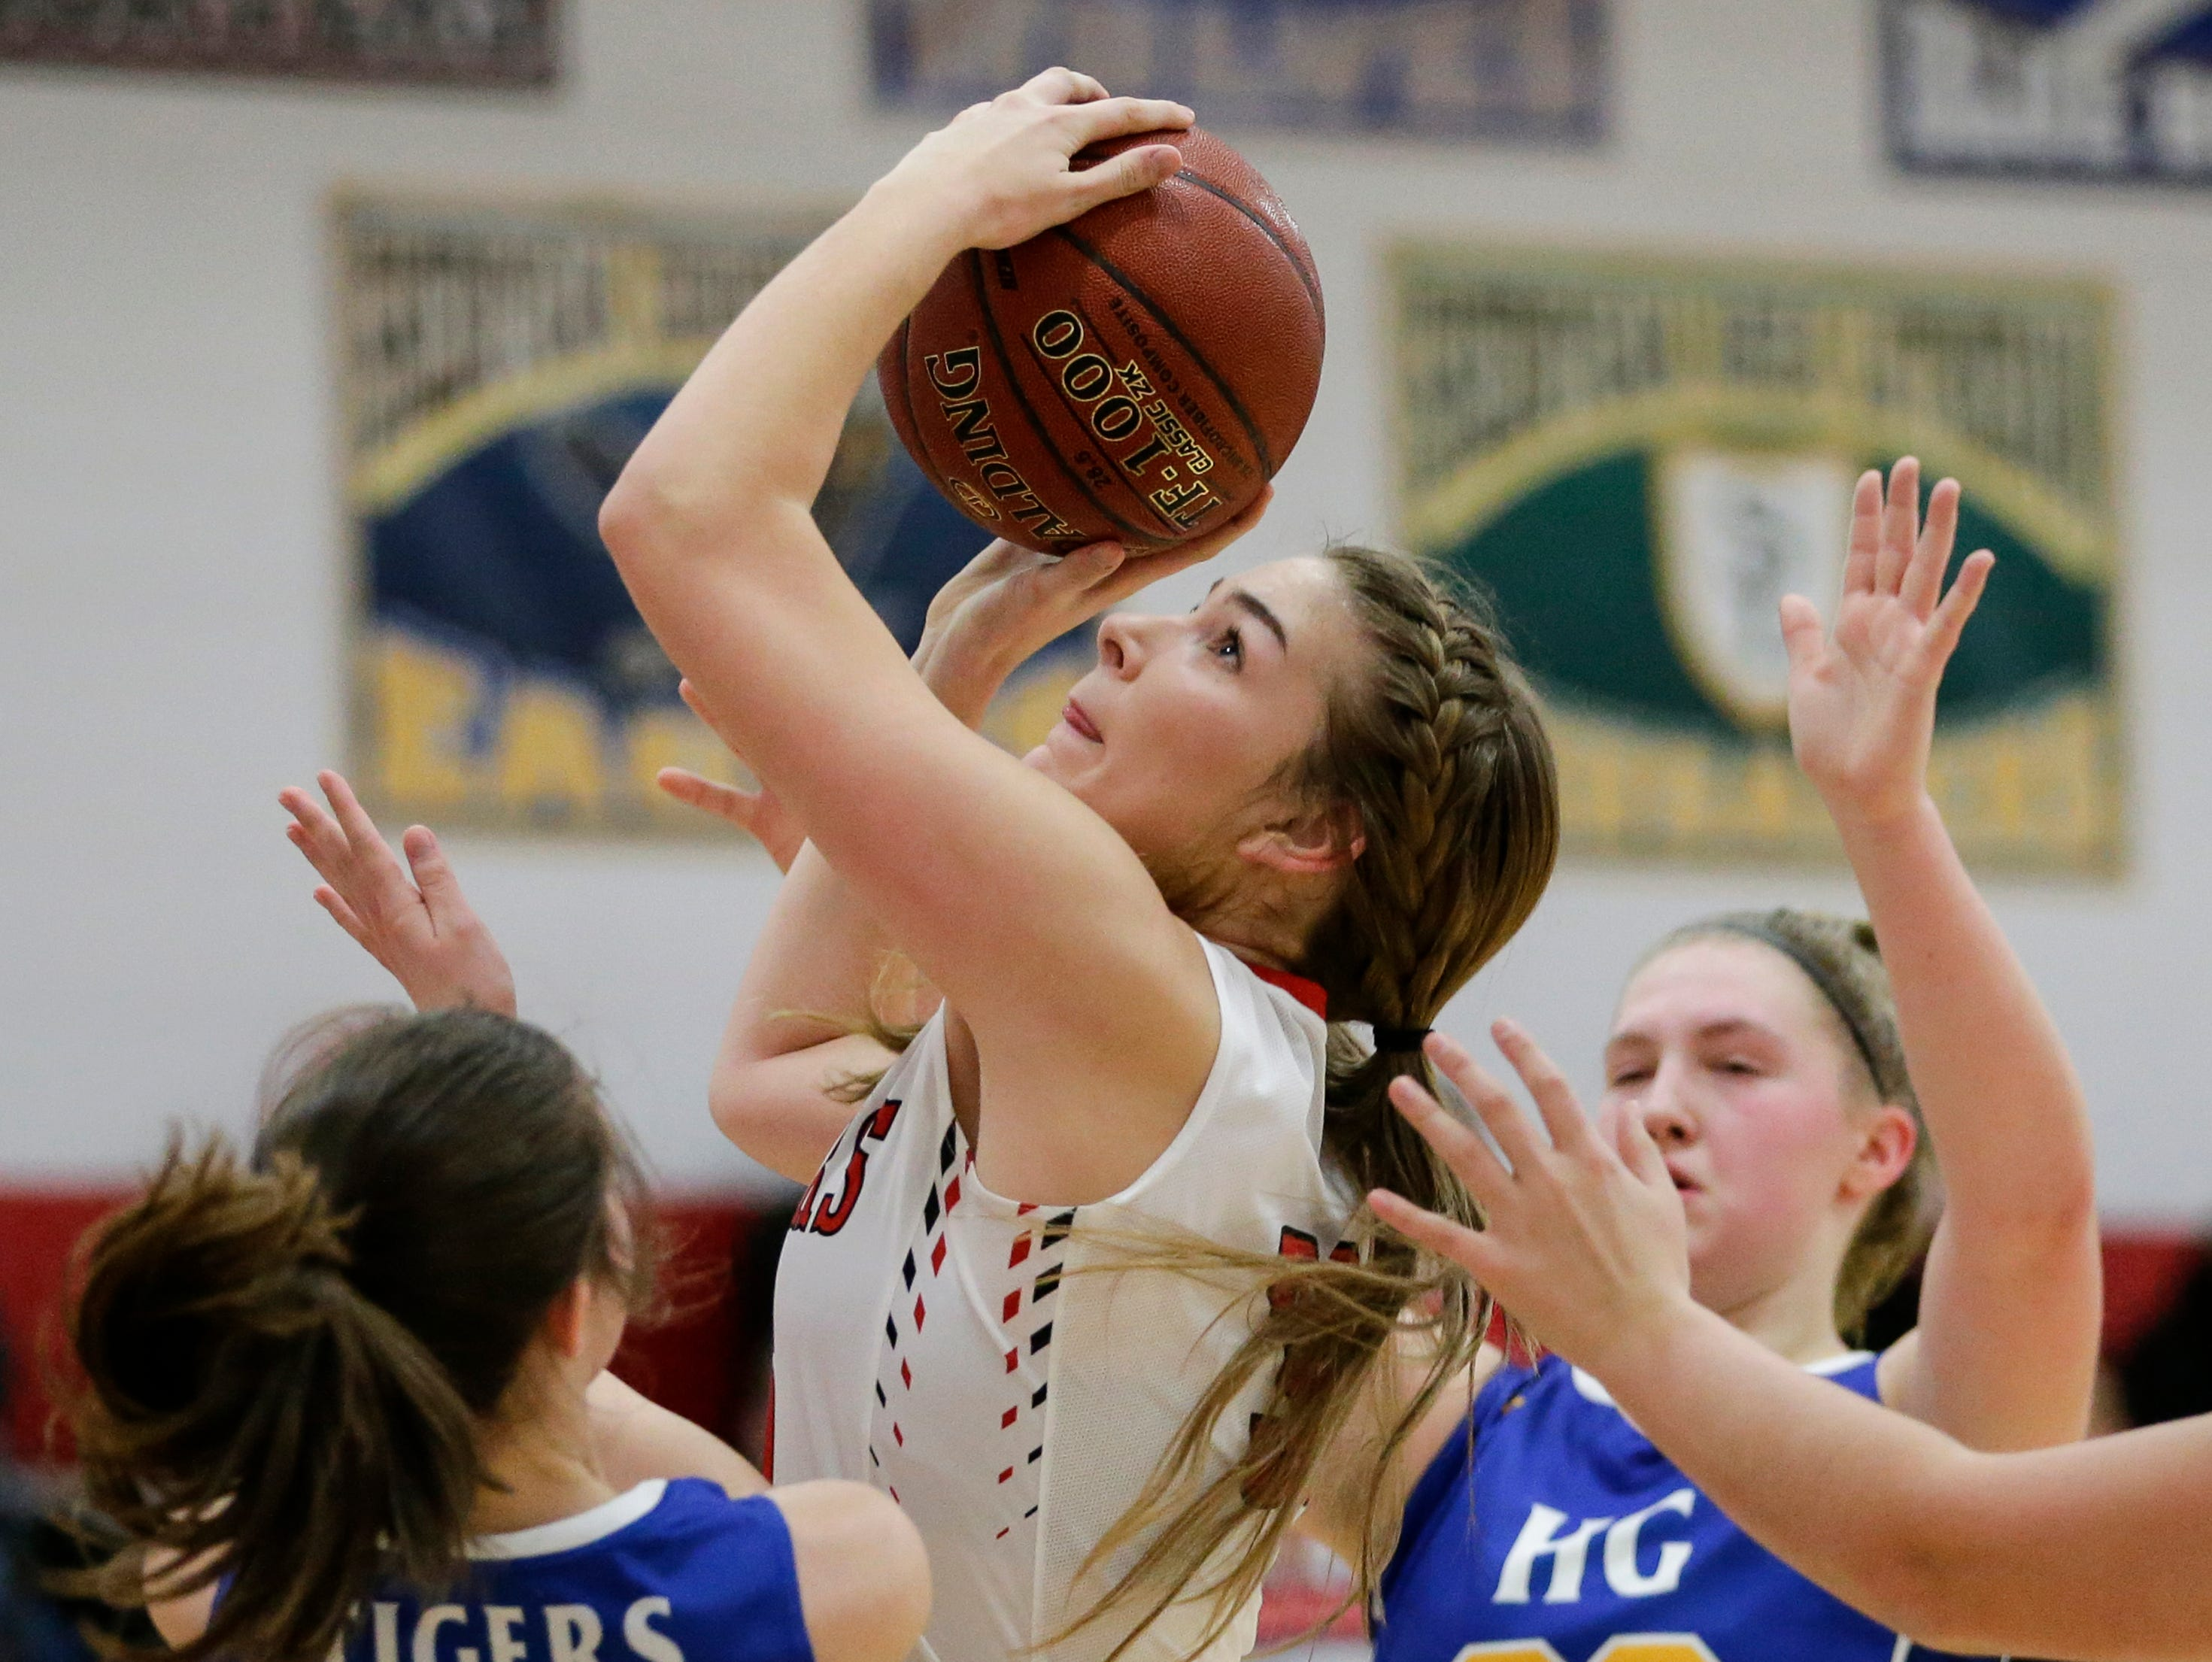 Manitowoc Lutheran's Madison Gorte goes up for a shot against Howards Grove at Manitowoc Lutheran High School Tuesday, December 18, 2018, in Manitowoc, Wis. Joshua Clark/USA TODAY NETWORK-Wisconsin